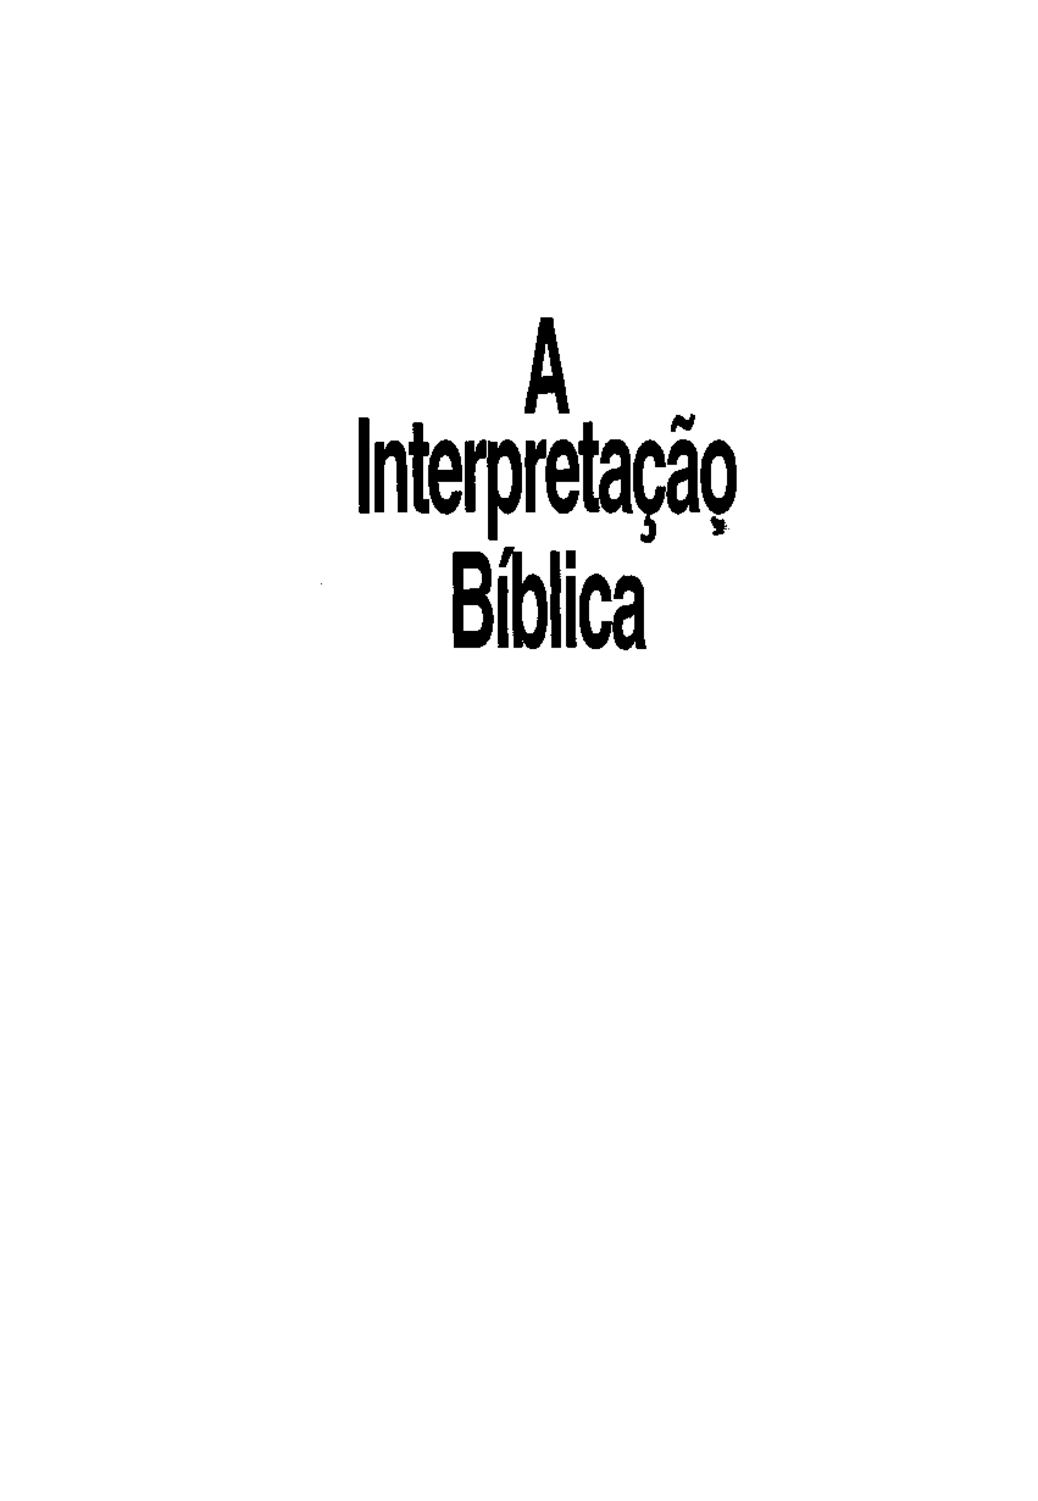 AUTOR ROBERT DOWNLOAD PANORAMA H.GUNDRY GRATUITO NOVO DO TESTAMENTO